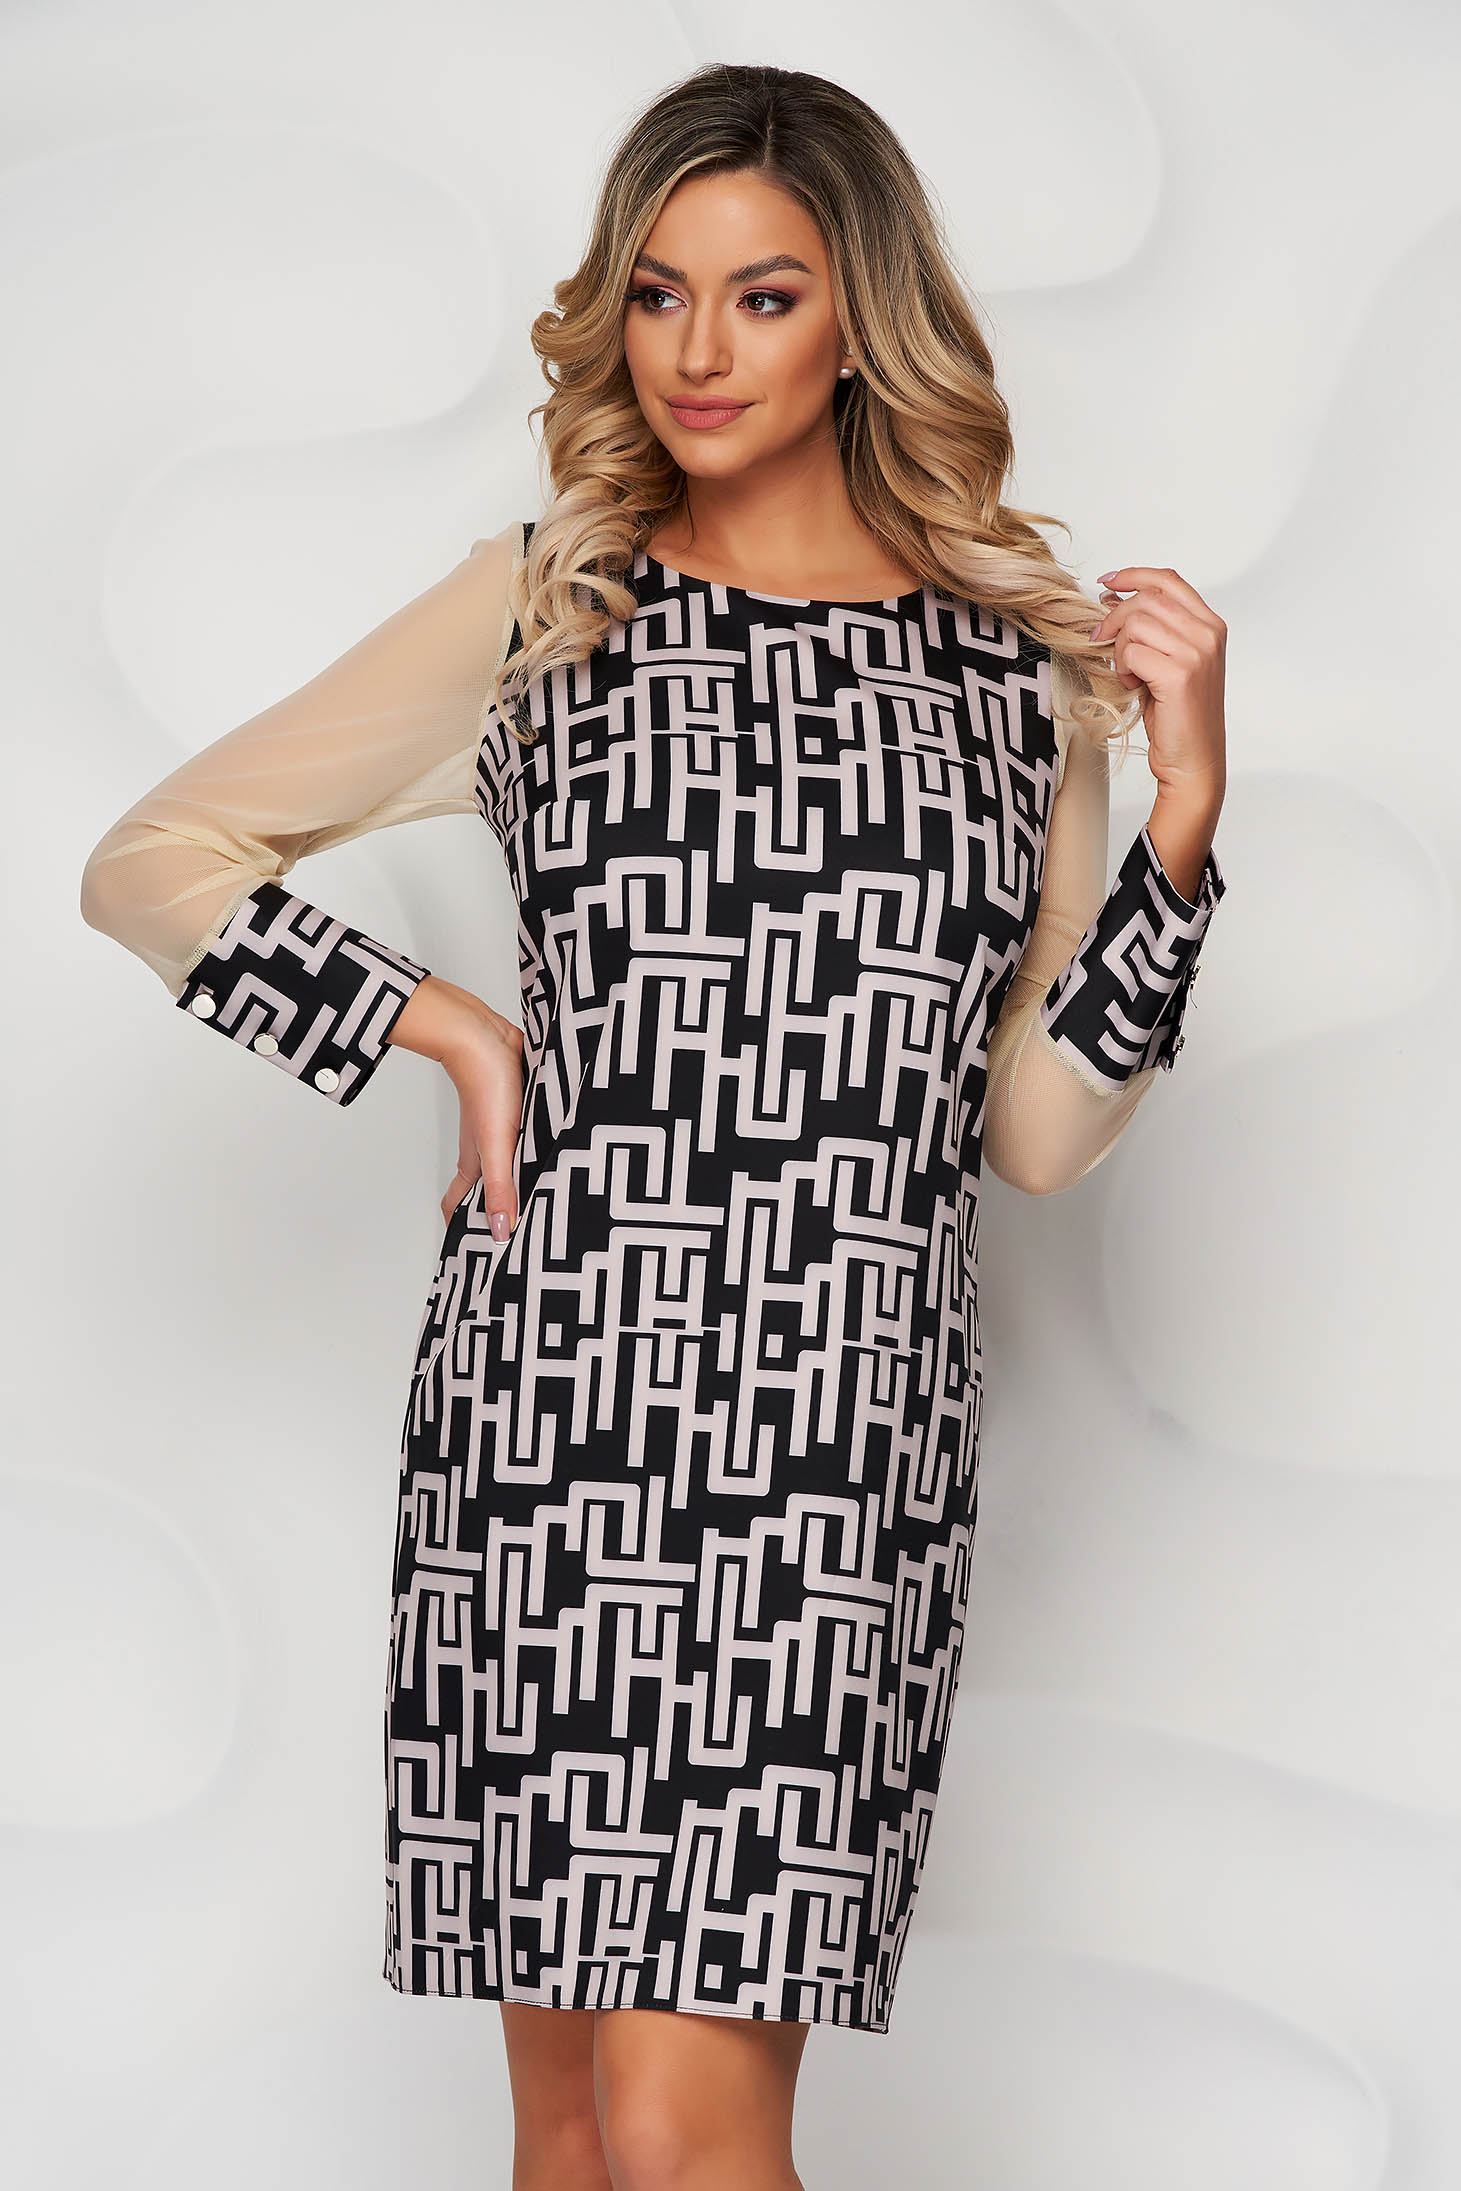 With graphic details office straight transparent sleeves cream dress